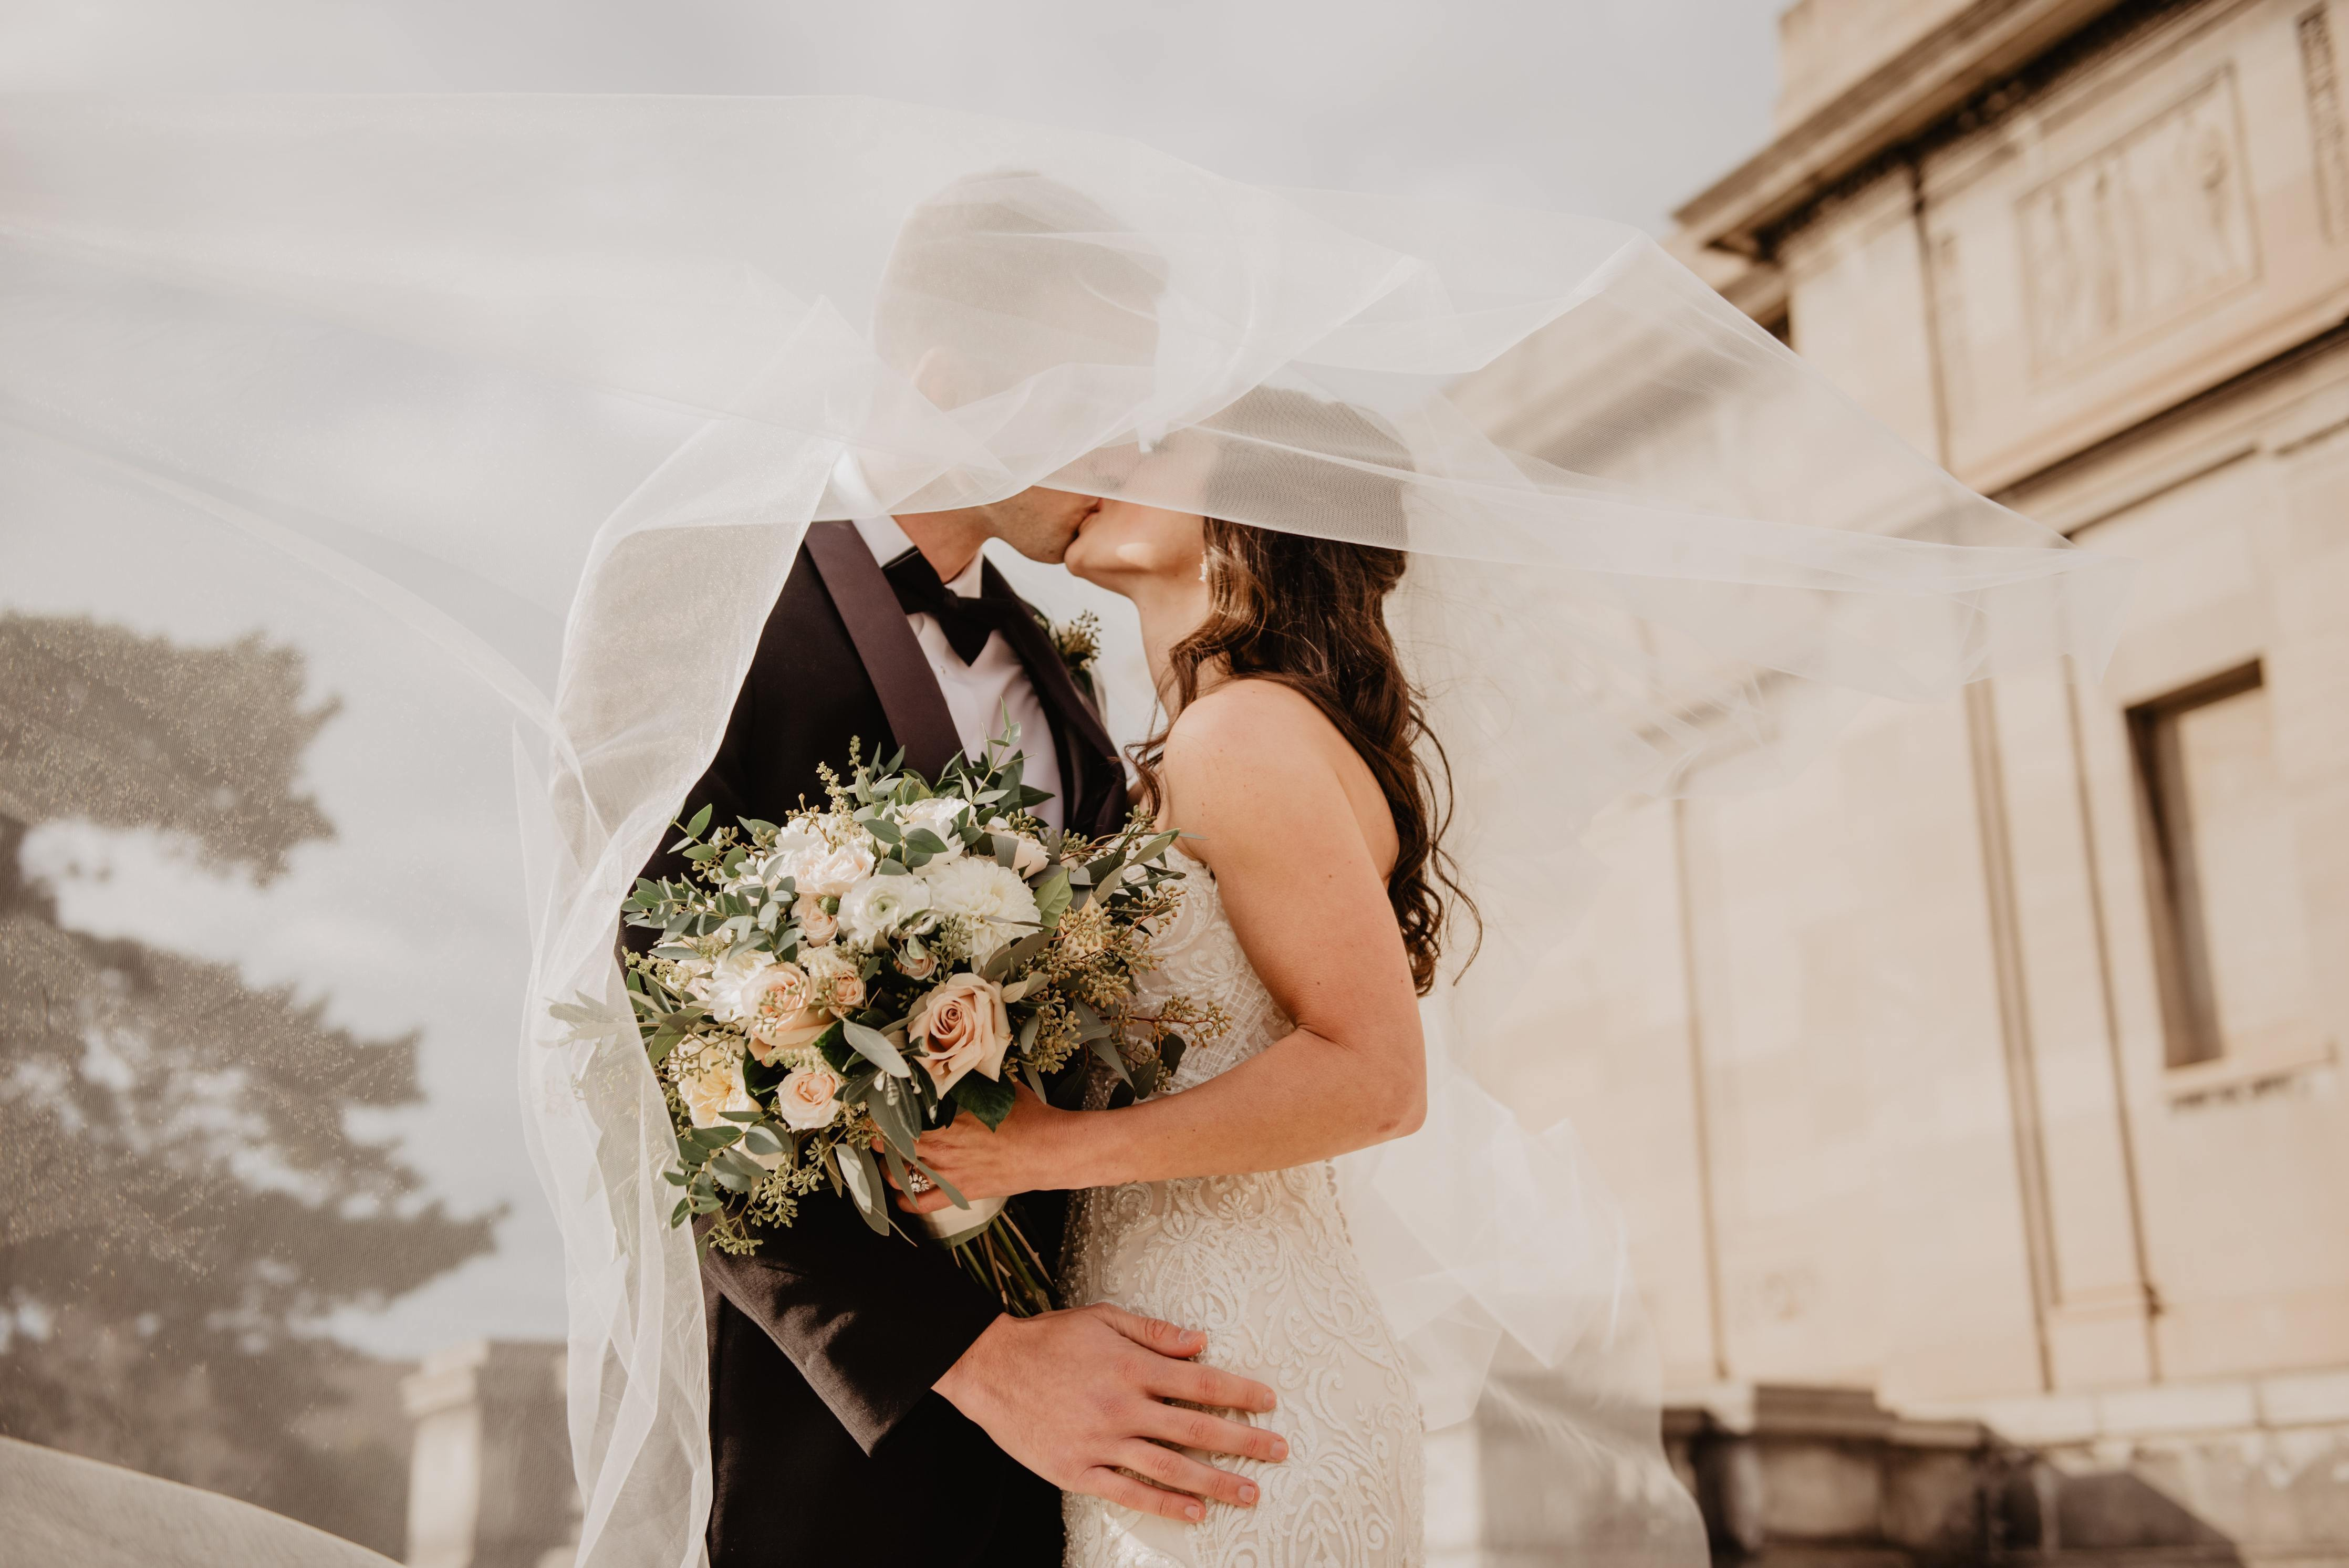 Our highly skilled dressmakers in Europe work their craft with unmatched precision and finesse. Each dress is hand-crafted, made to measure, and intricately embellished with hand-sewn beads, delicate pearls and crystals, lace appliques and guipure, to create that timeless wedding dress that leaves you spellbound.